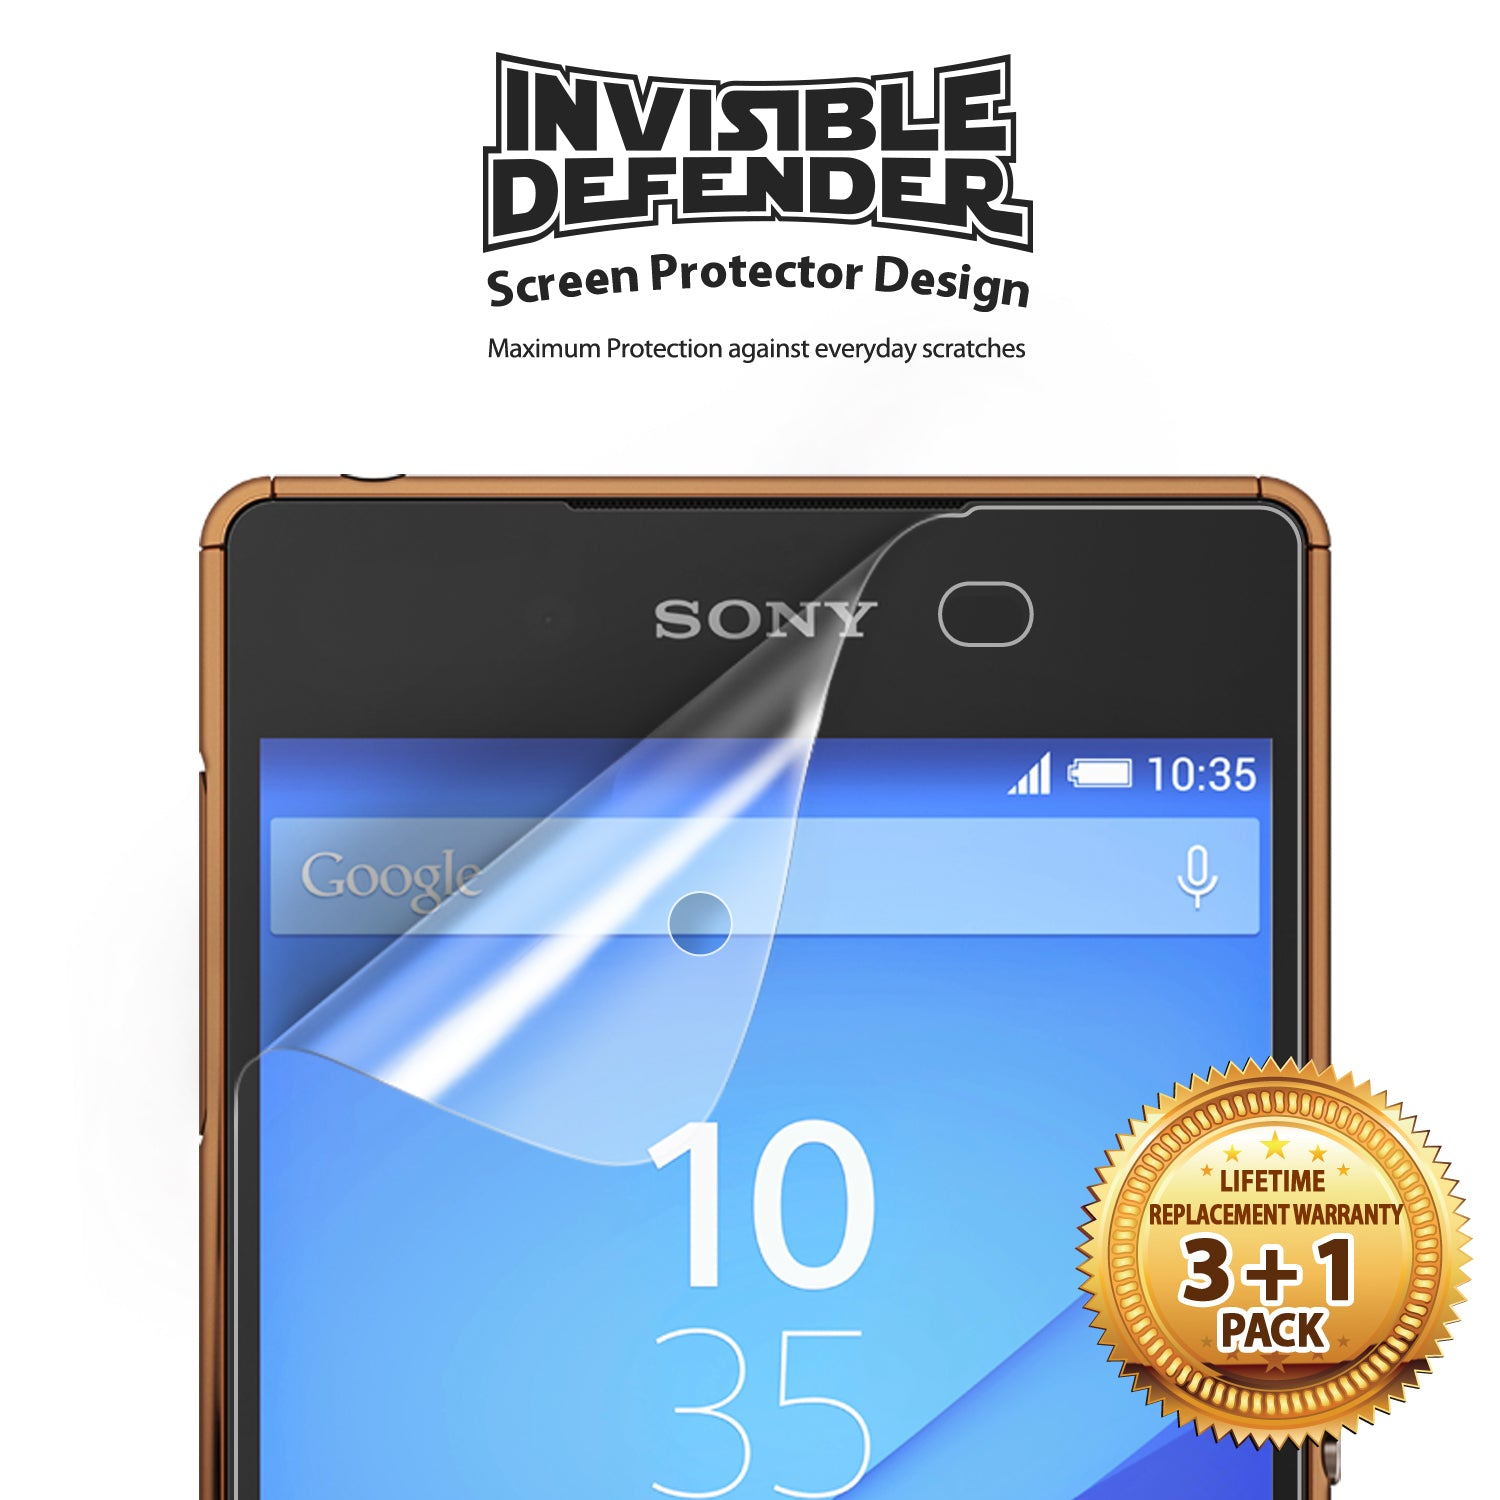 ringke invisible defender screen protector designed for sony xperia z3 / z3 plus